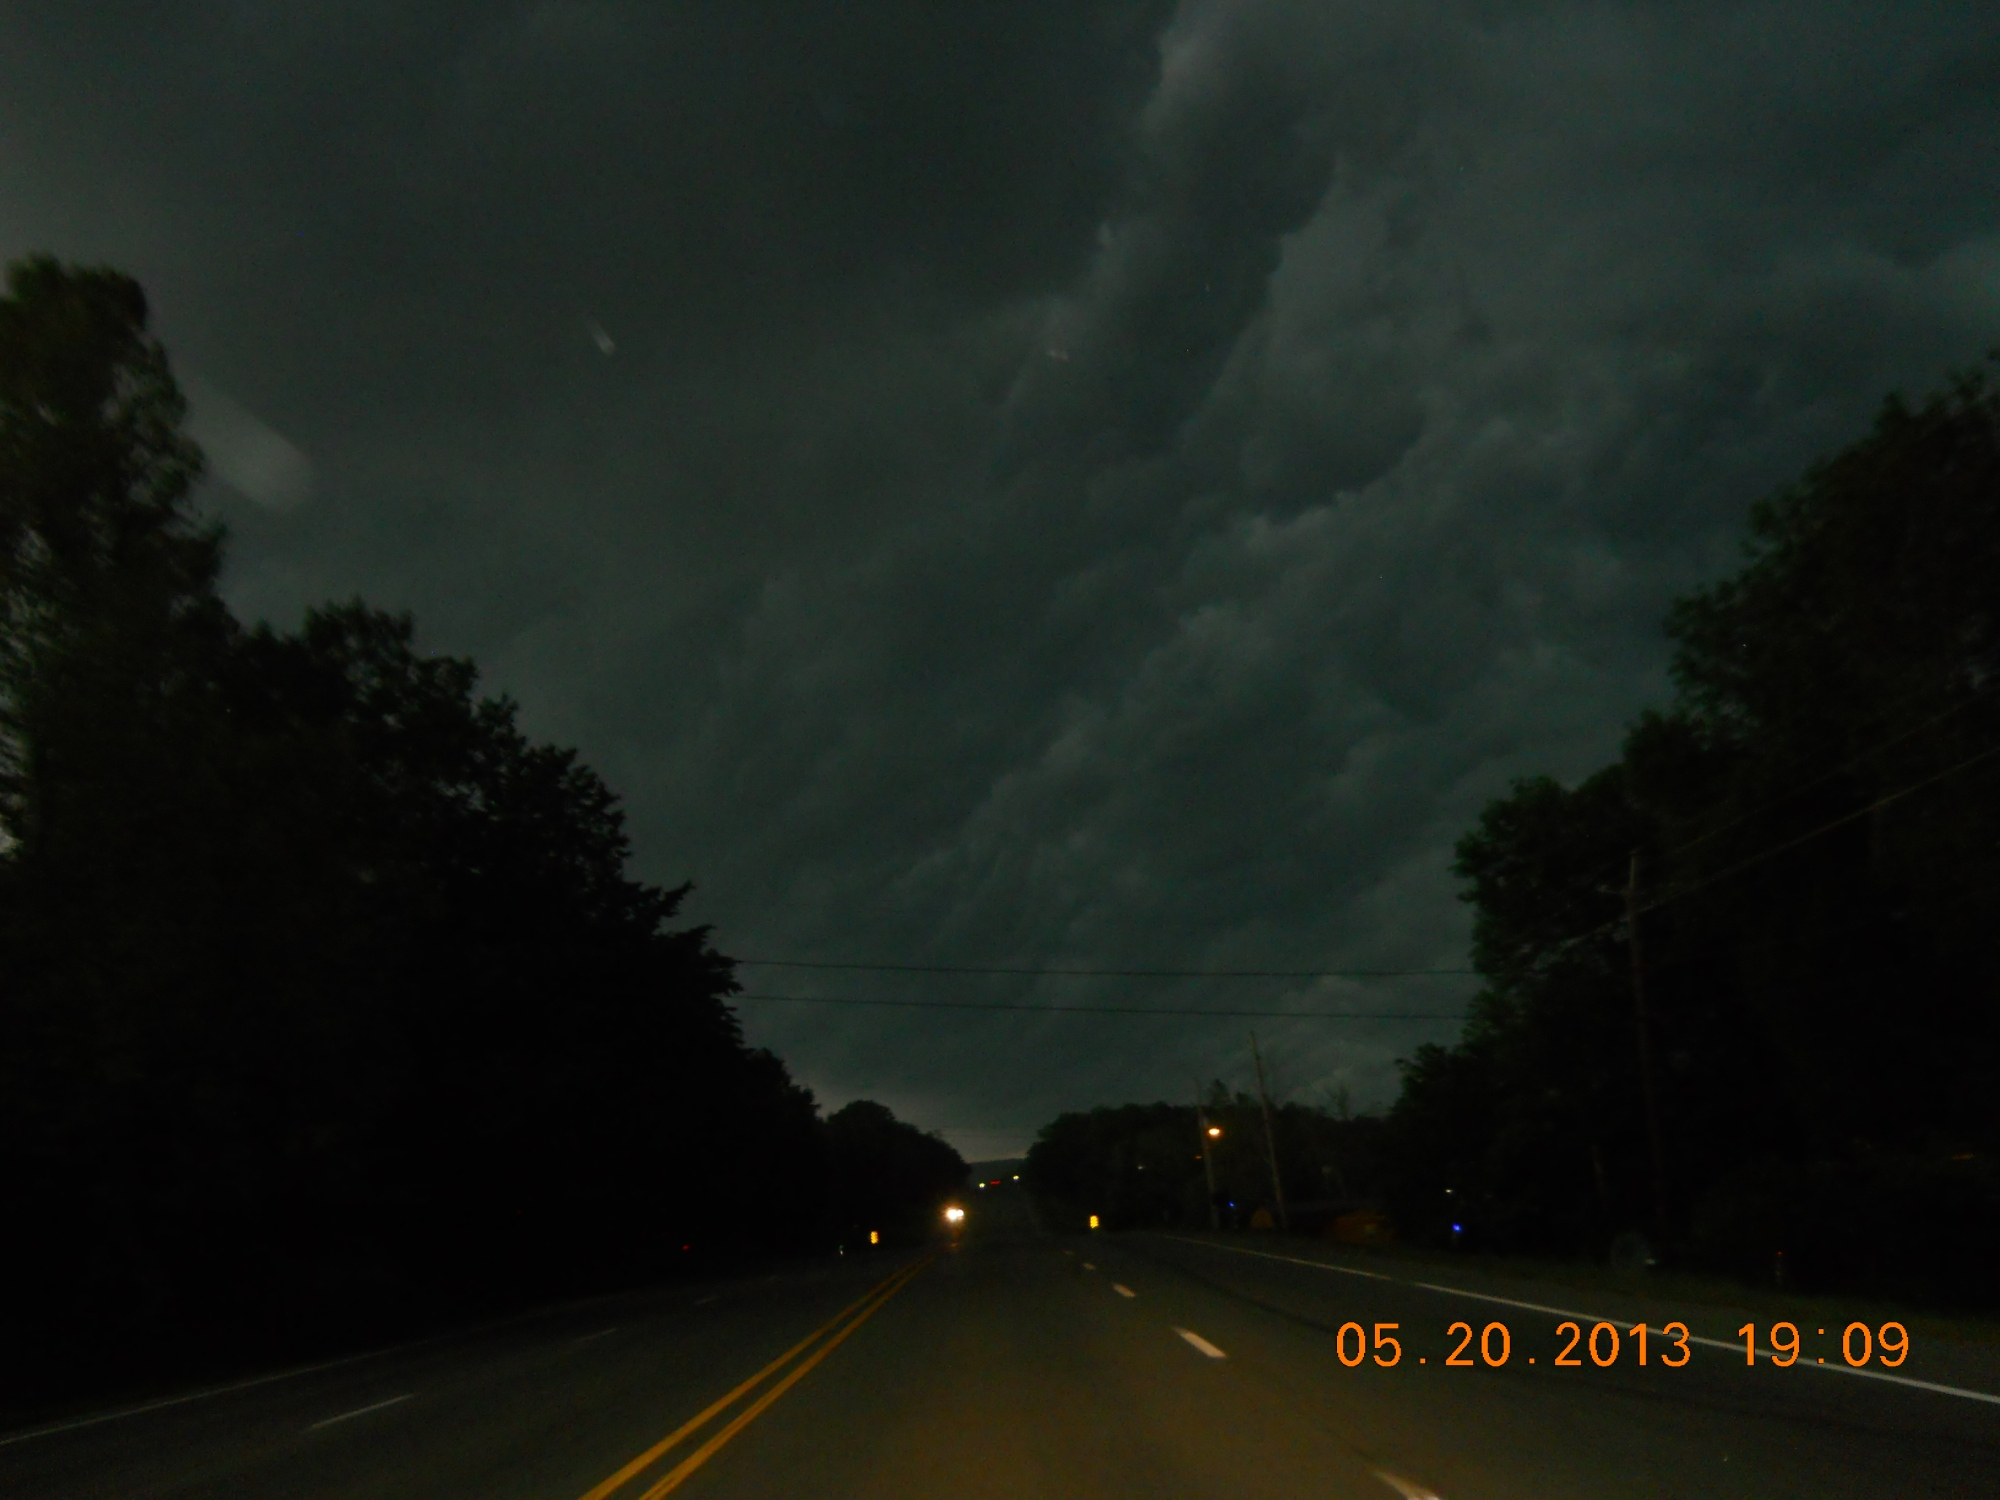 These crazy looking clouds were seen going into West Fork (heading s71b) near where I live around 7:15pm